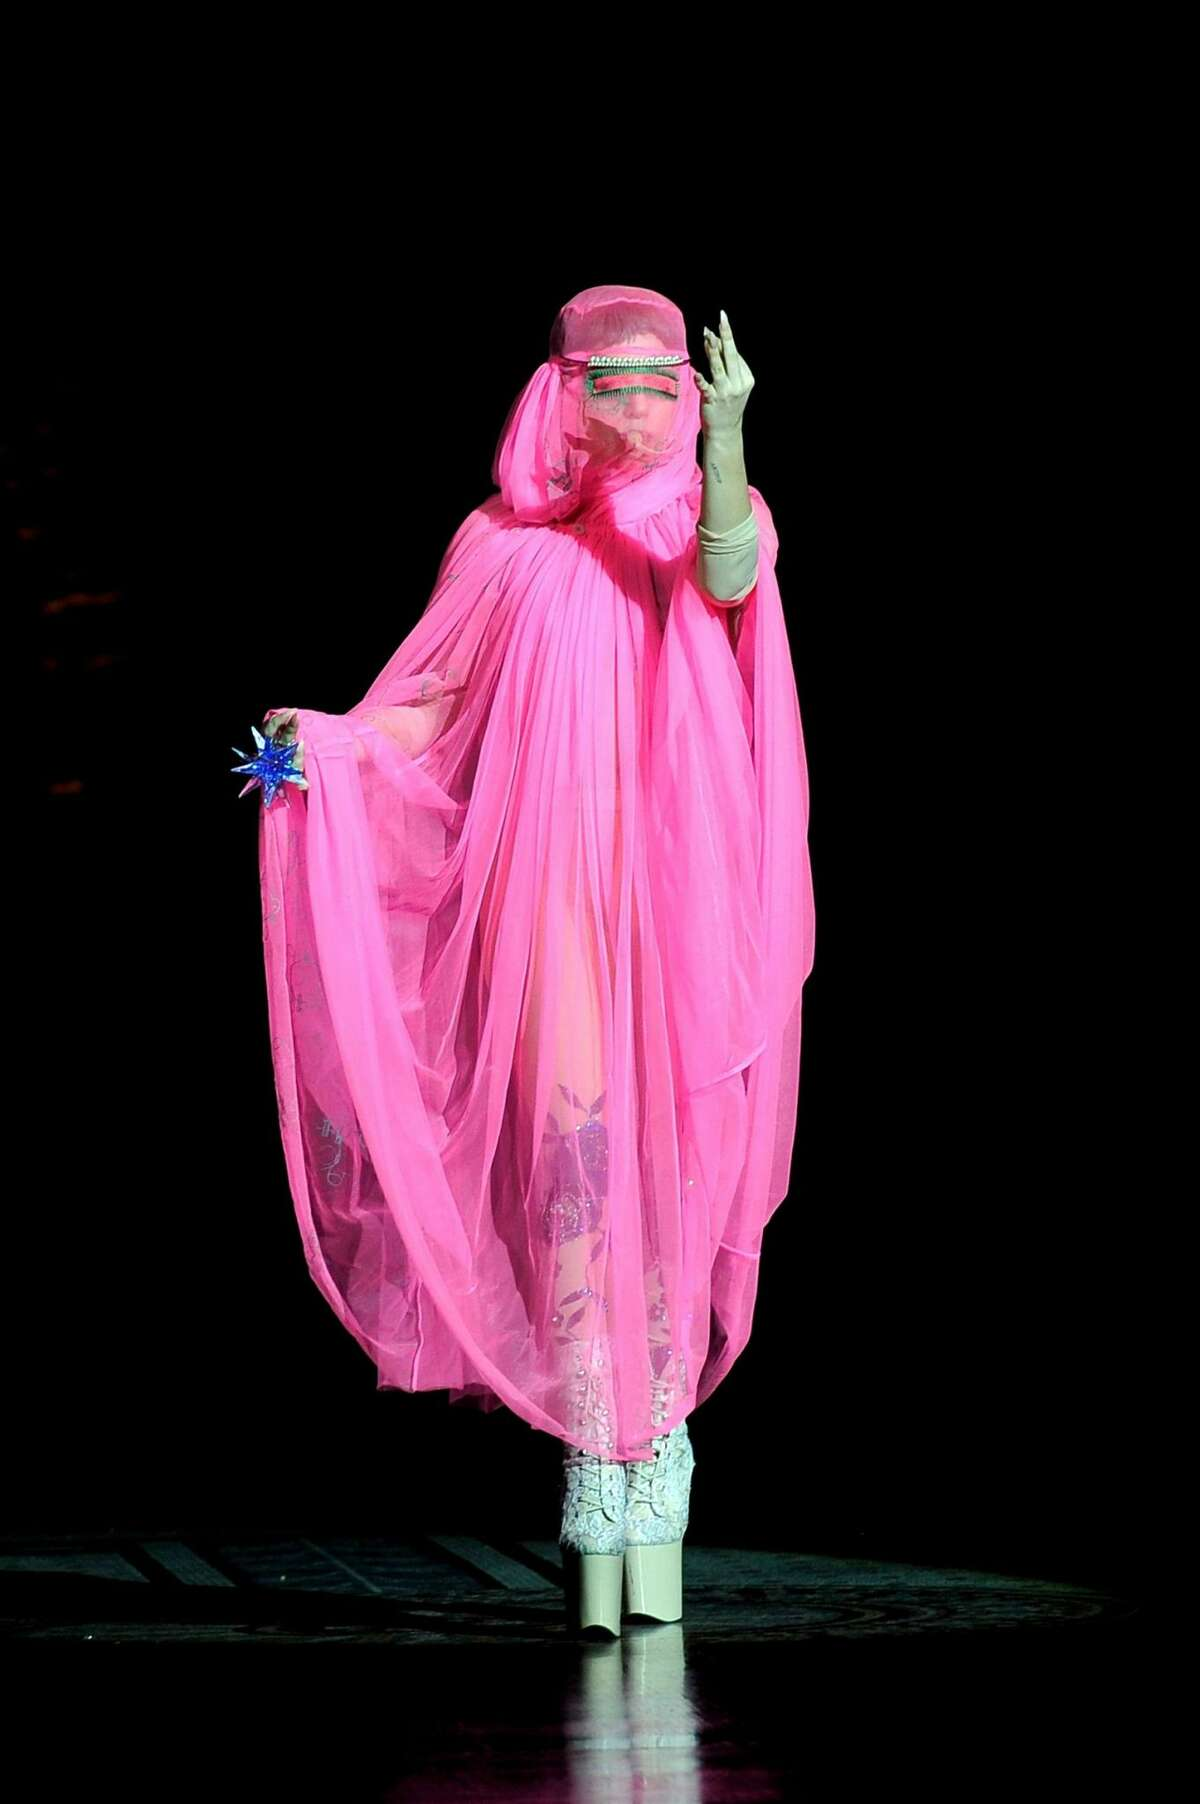 Lady Gaga at London Fashion Week in 2012 The singer offended many in the Muslim community when she walked down the London runway in a burqa. The Atlantic covered the controversy, calling her outfit choice